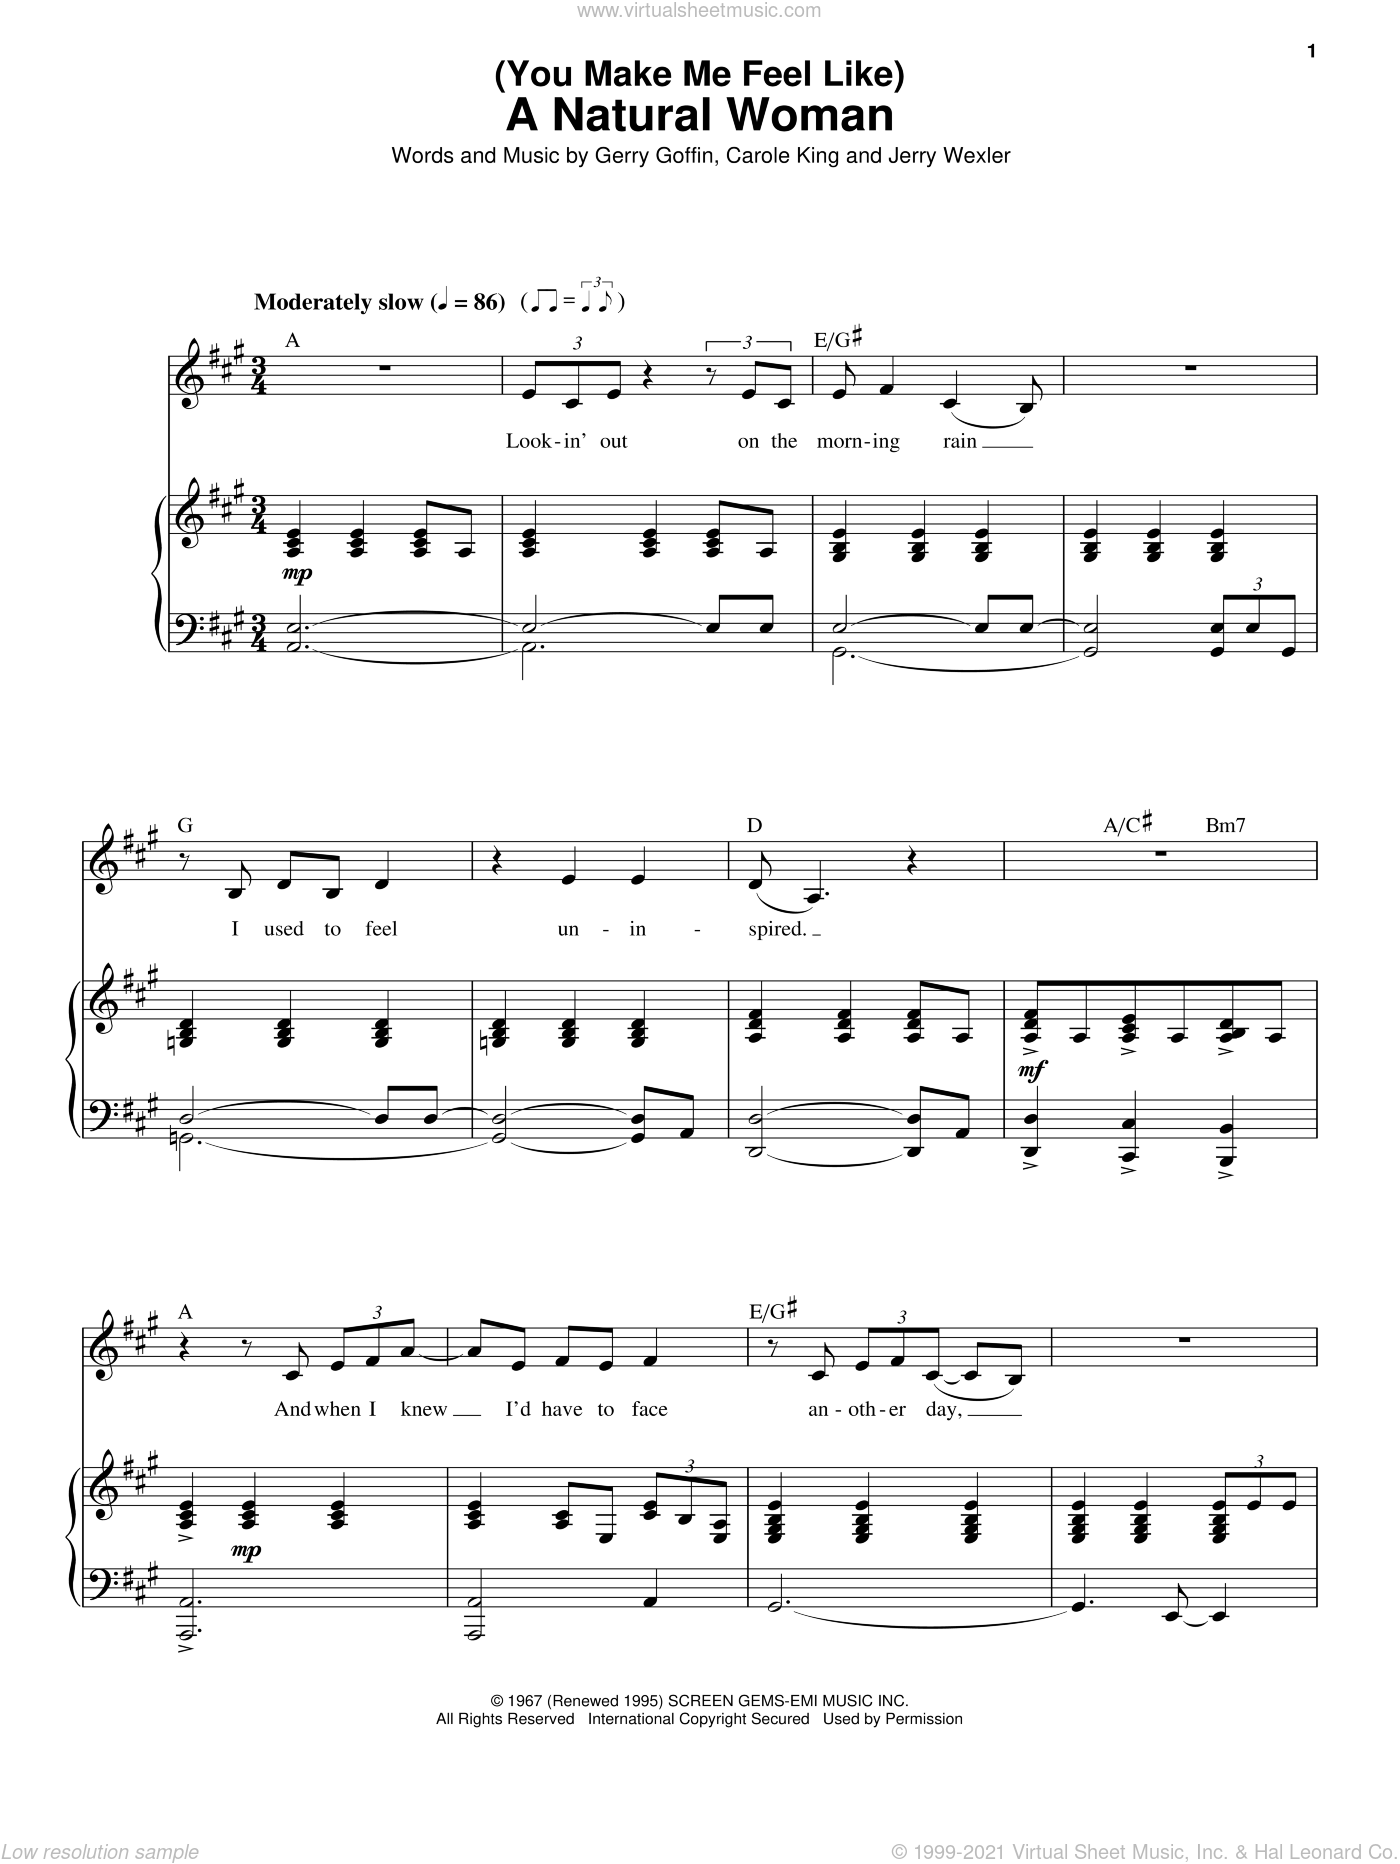 (You Make Me Feel Like) A Natural Woman sheet music for voice and piano by Carole King, Aretha Franklin, Gerry Goffin and Jerry Wexler, intermediate skill level